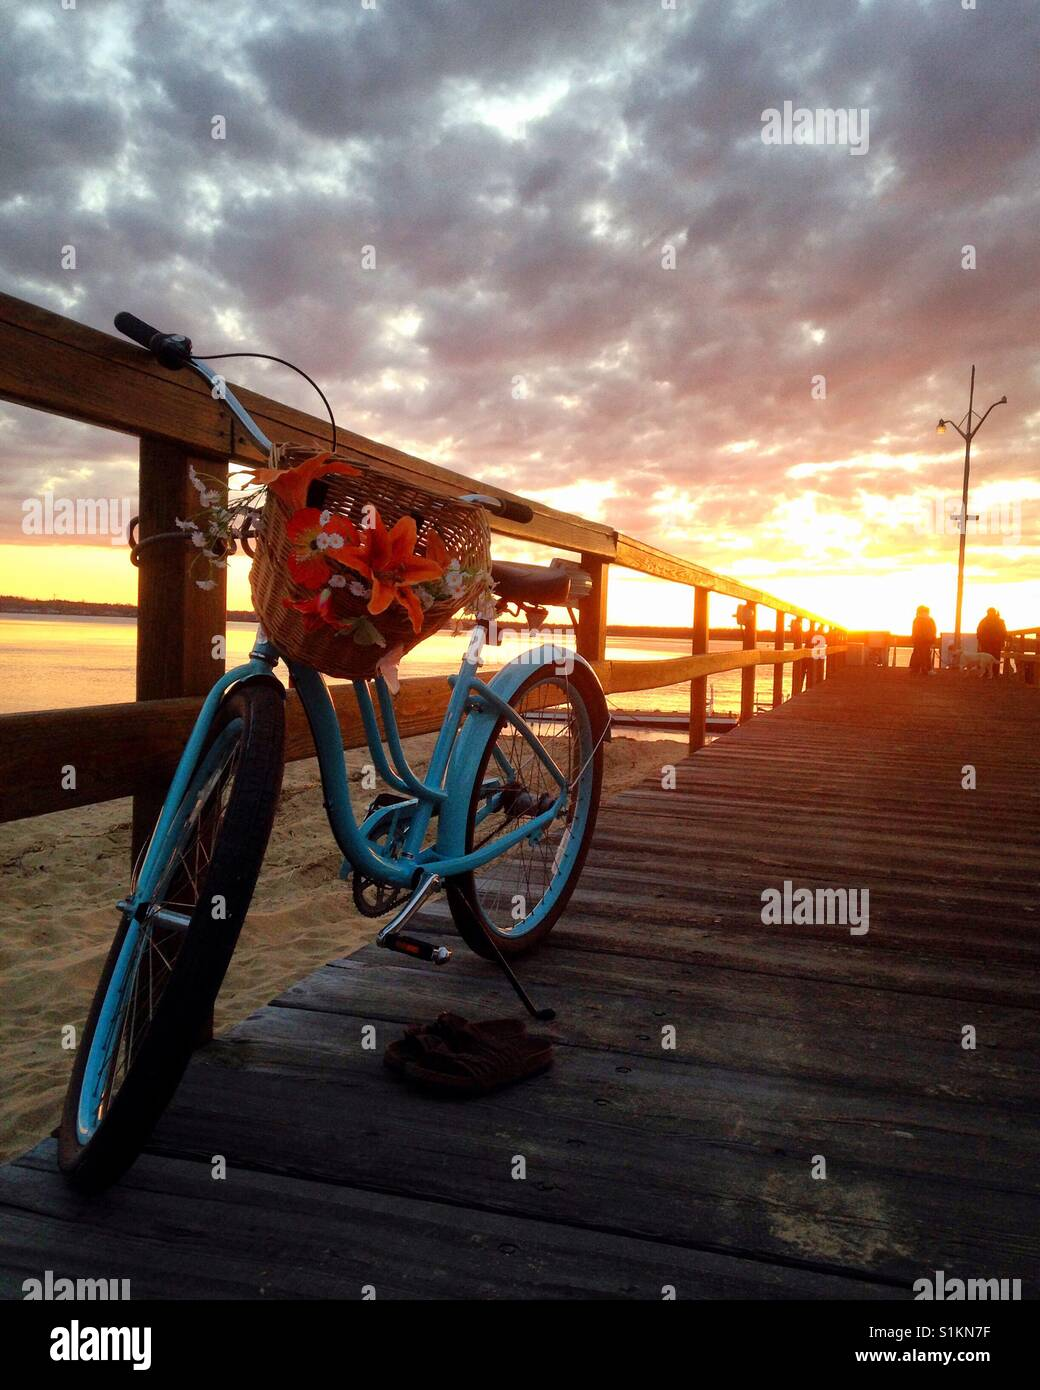 Ride into the sunset - Stock Image